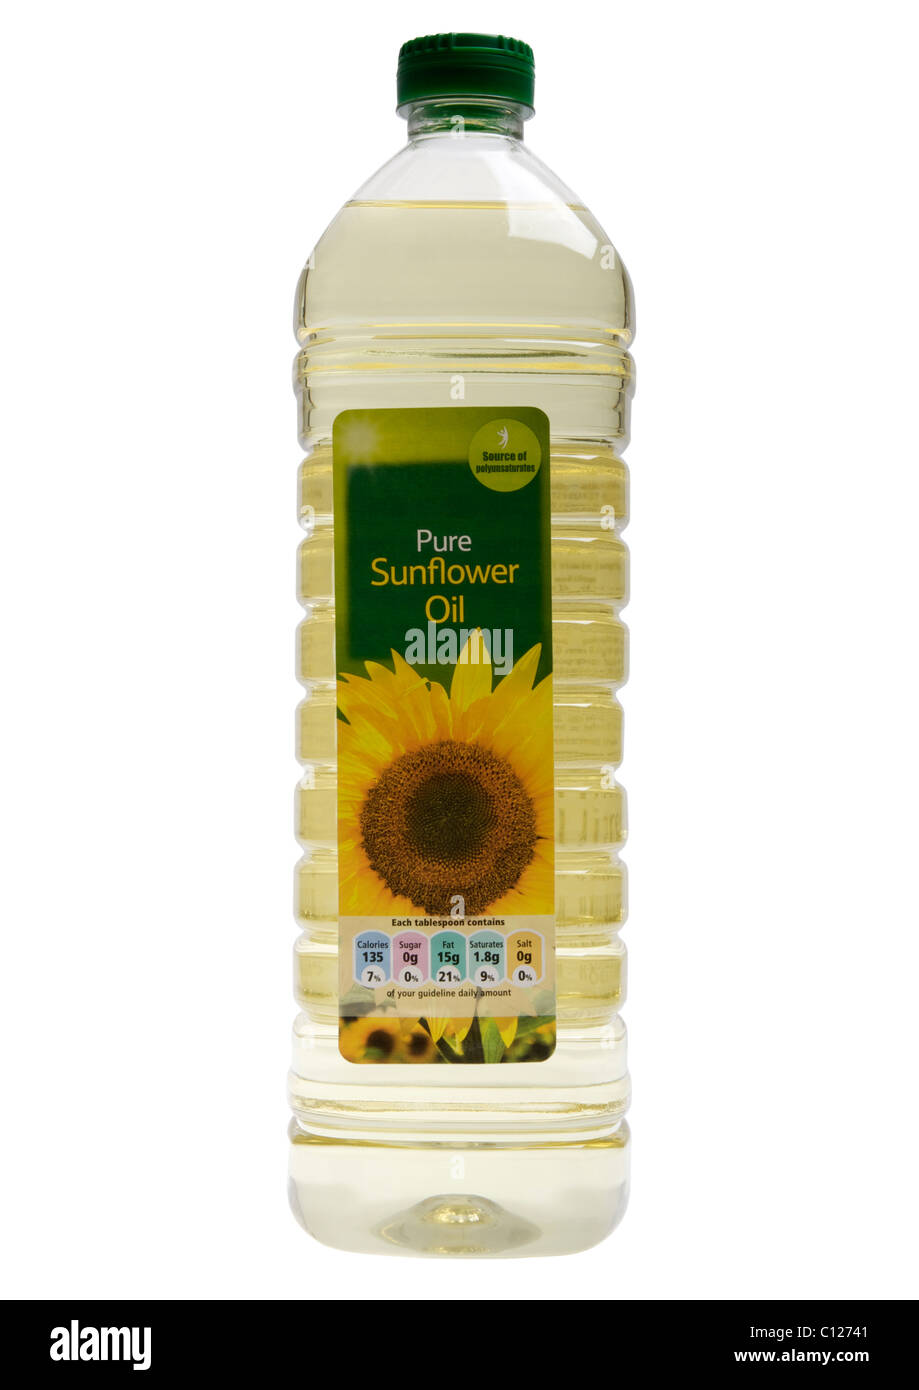 Sunflower oil: calories in a tablespoon, in a teaspoon, per 100 grams 78